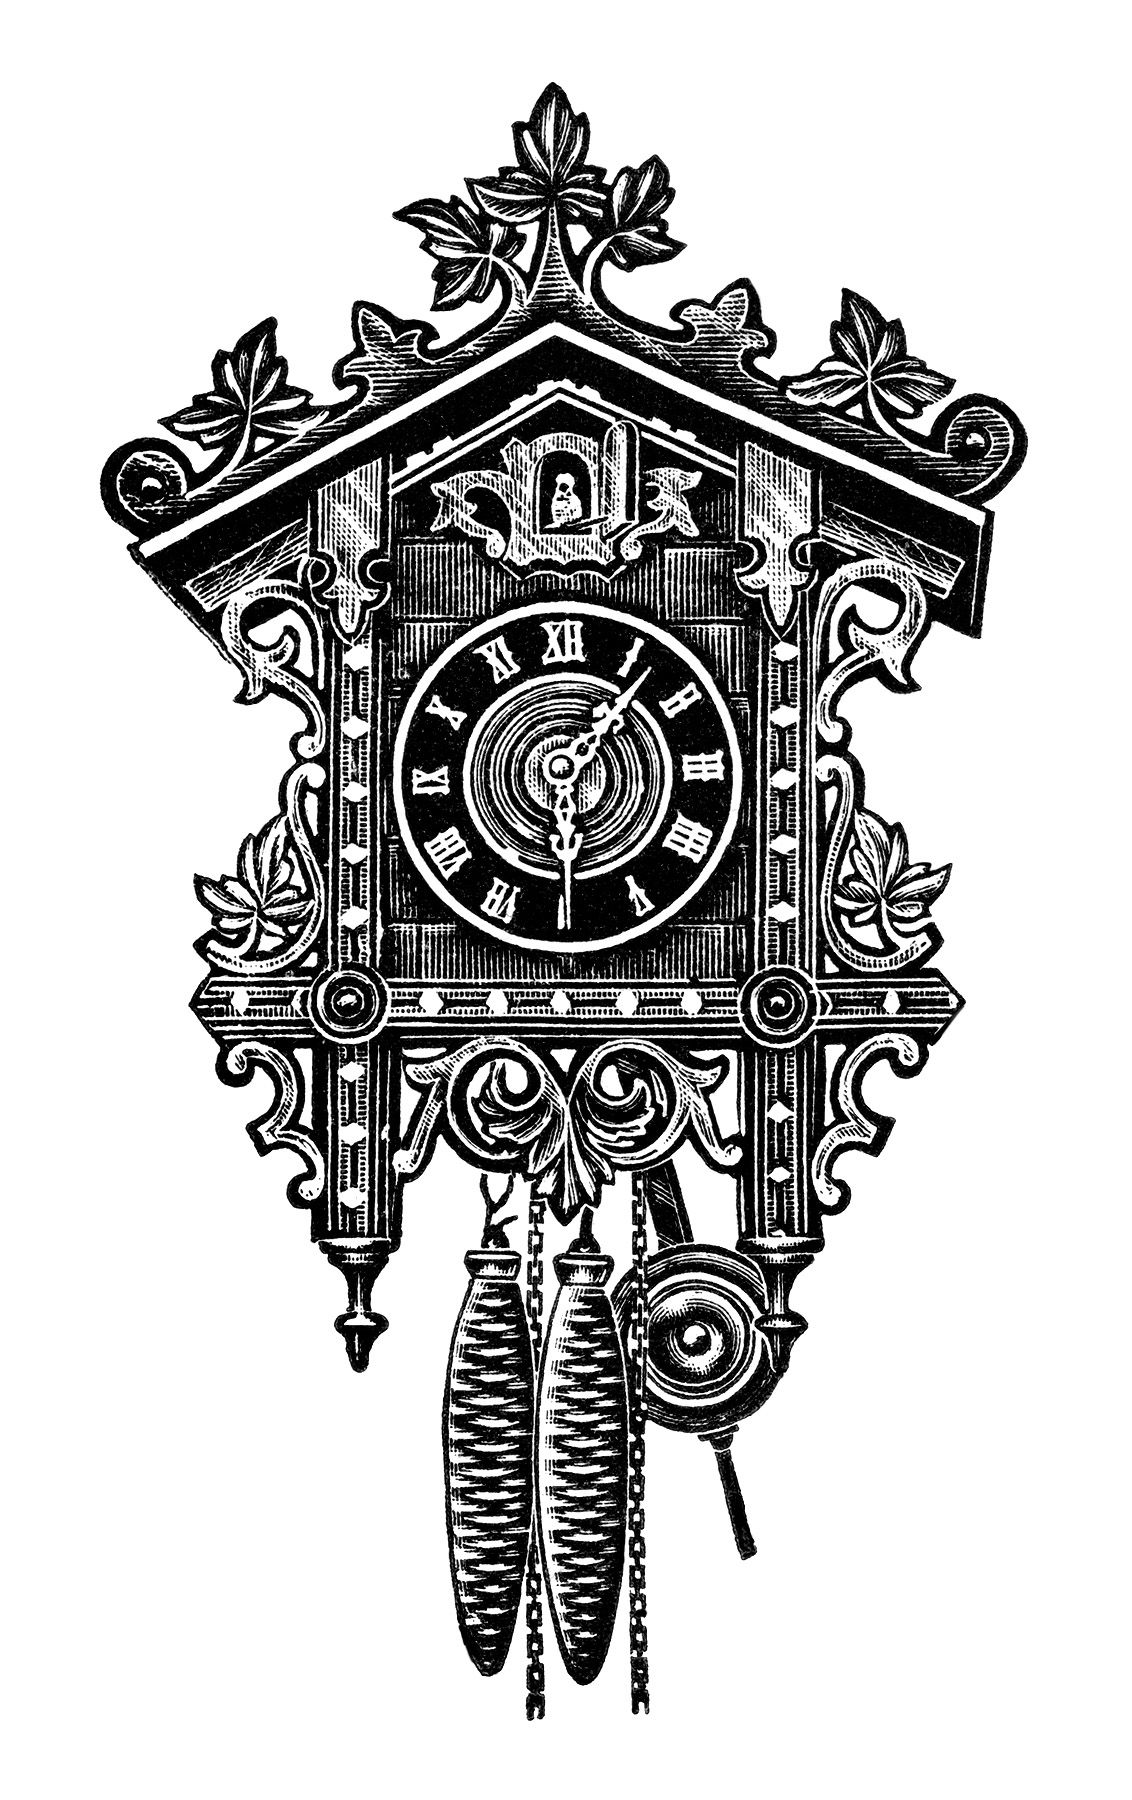 Pin By Cigronet On Vintg With Images Clock Drawings Clip Art